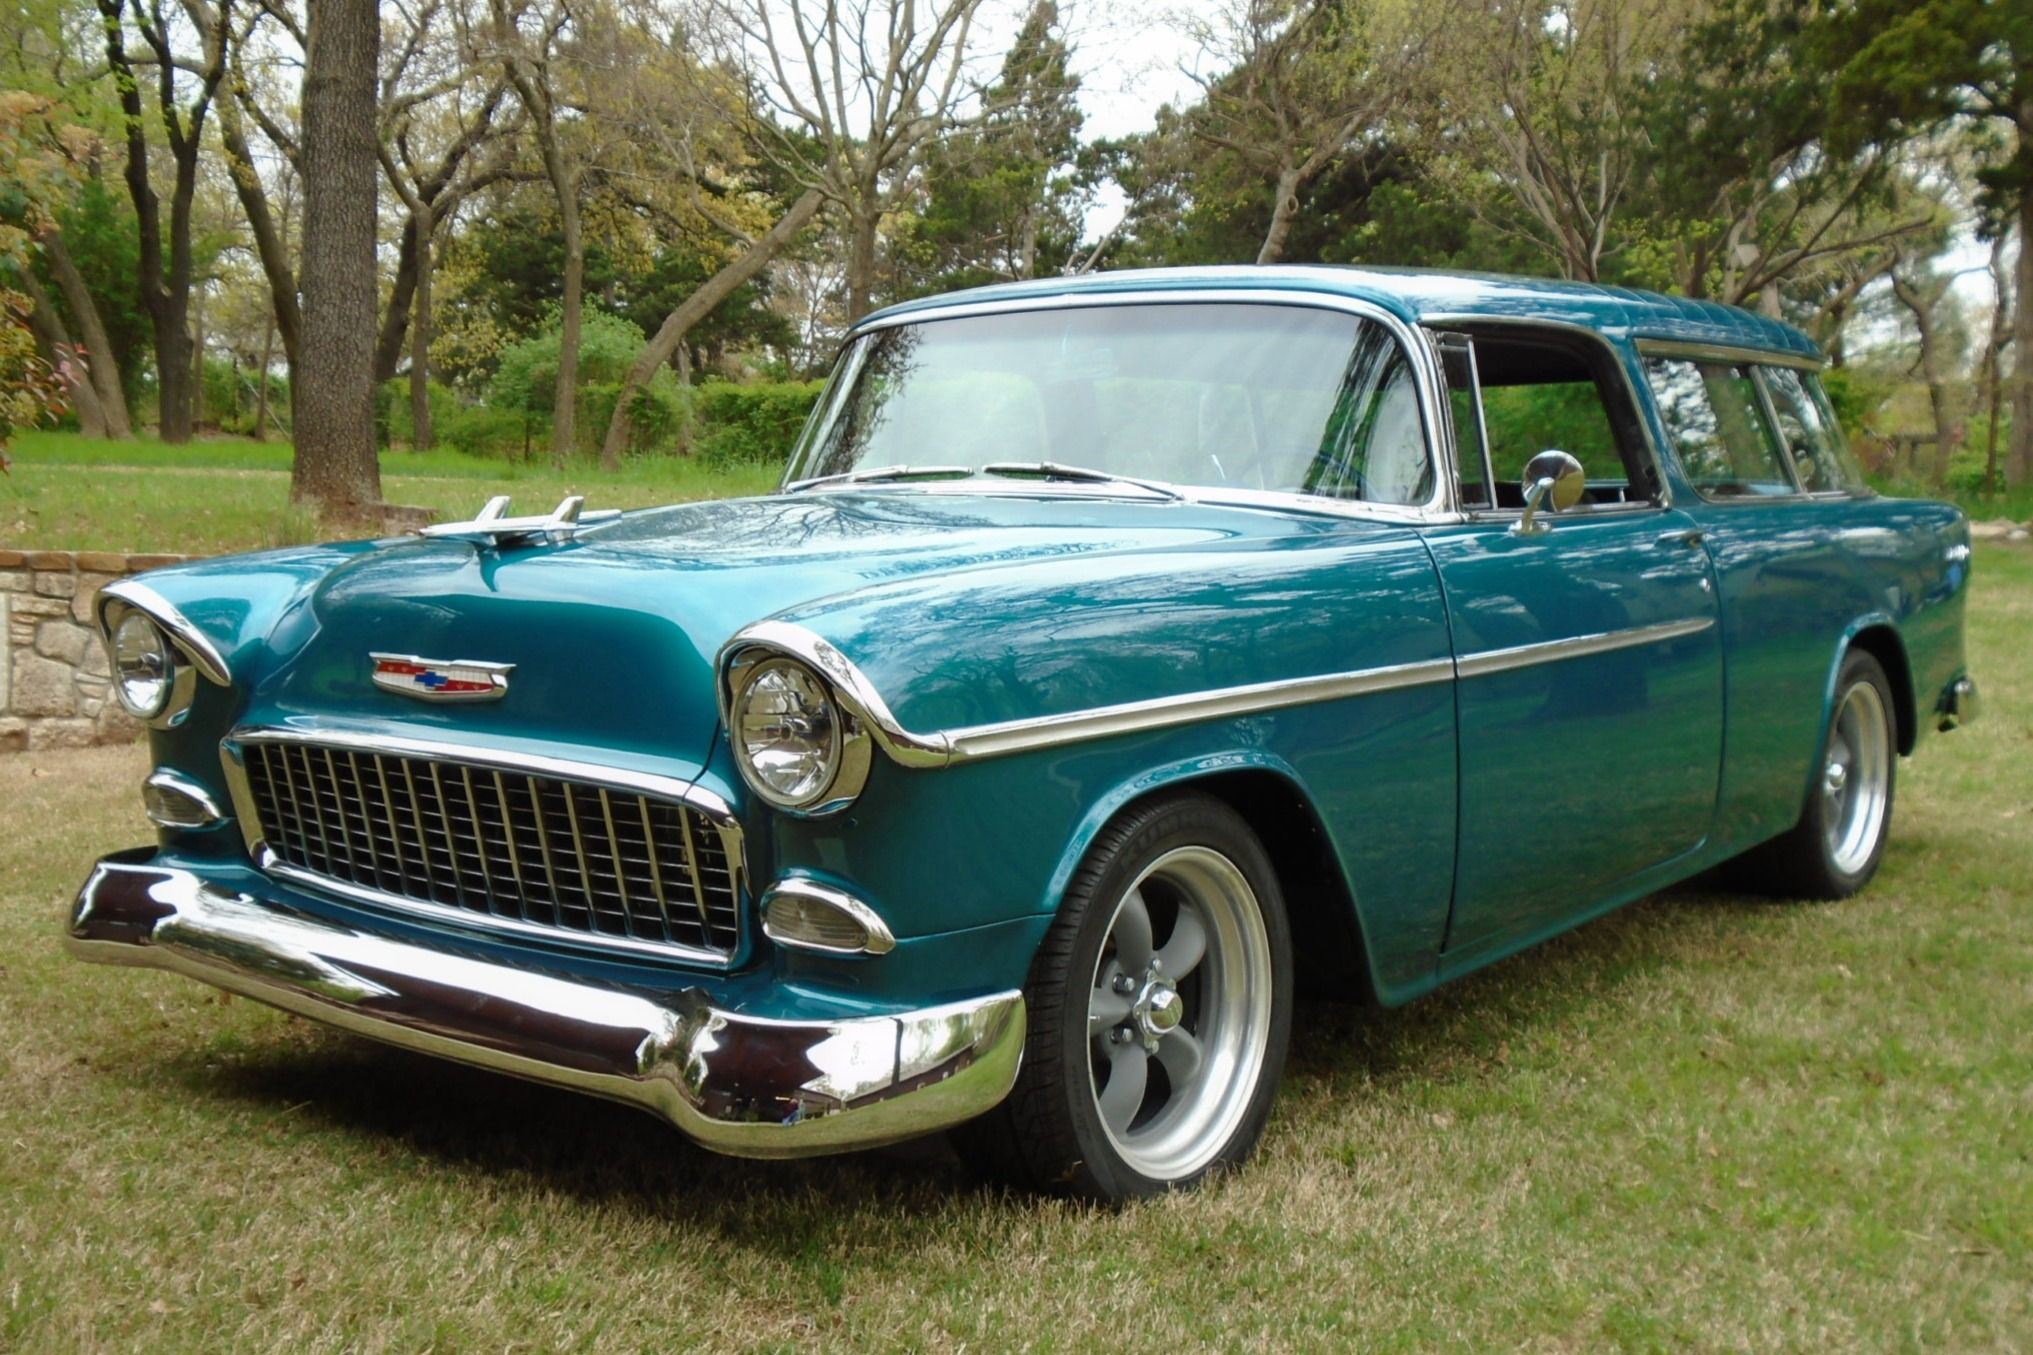 Modified 1955 Chevrolet Bel Air Nomad in 2020 1955